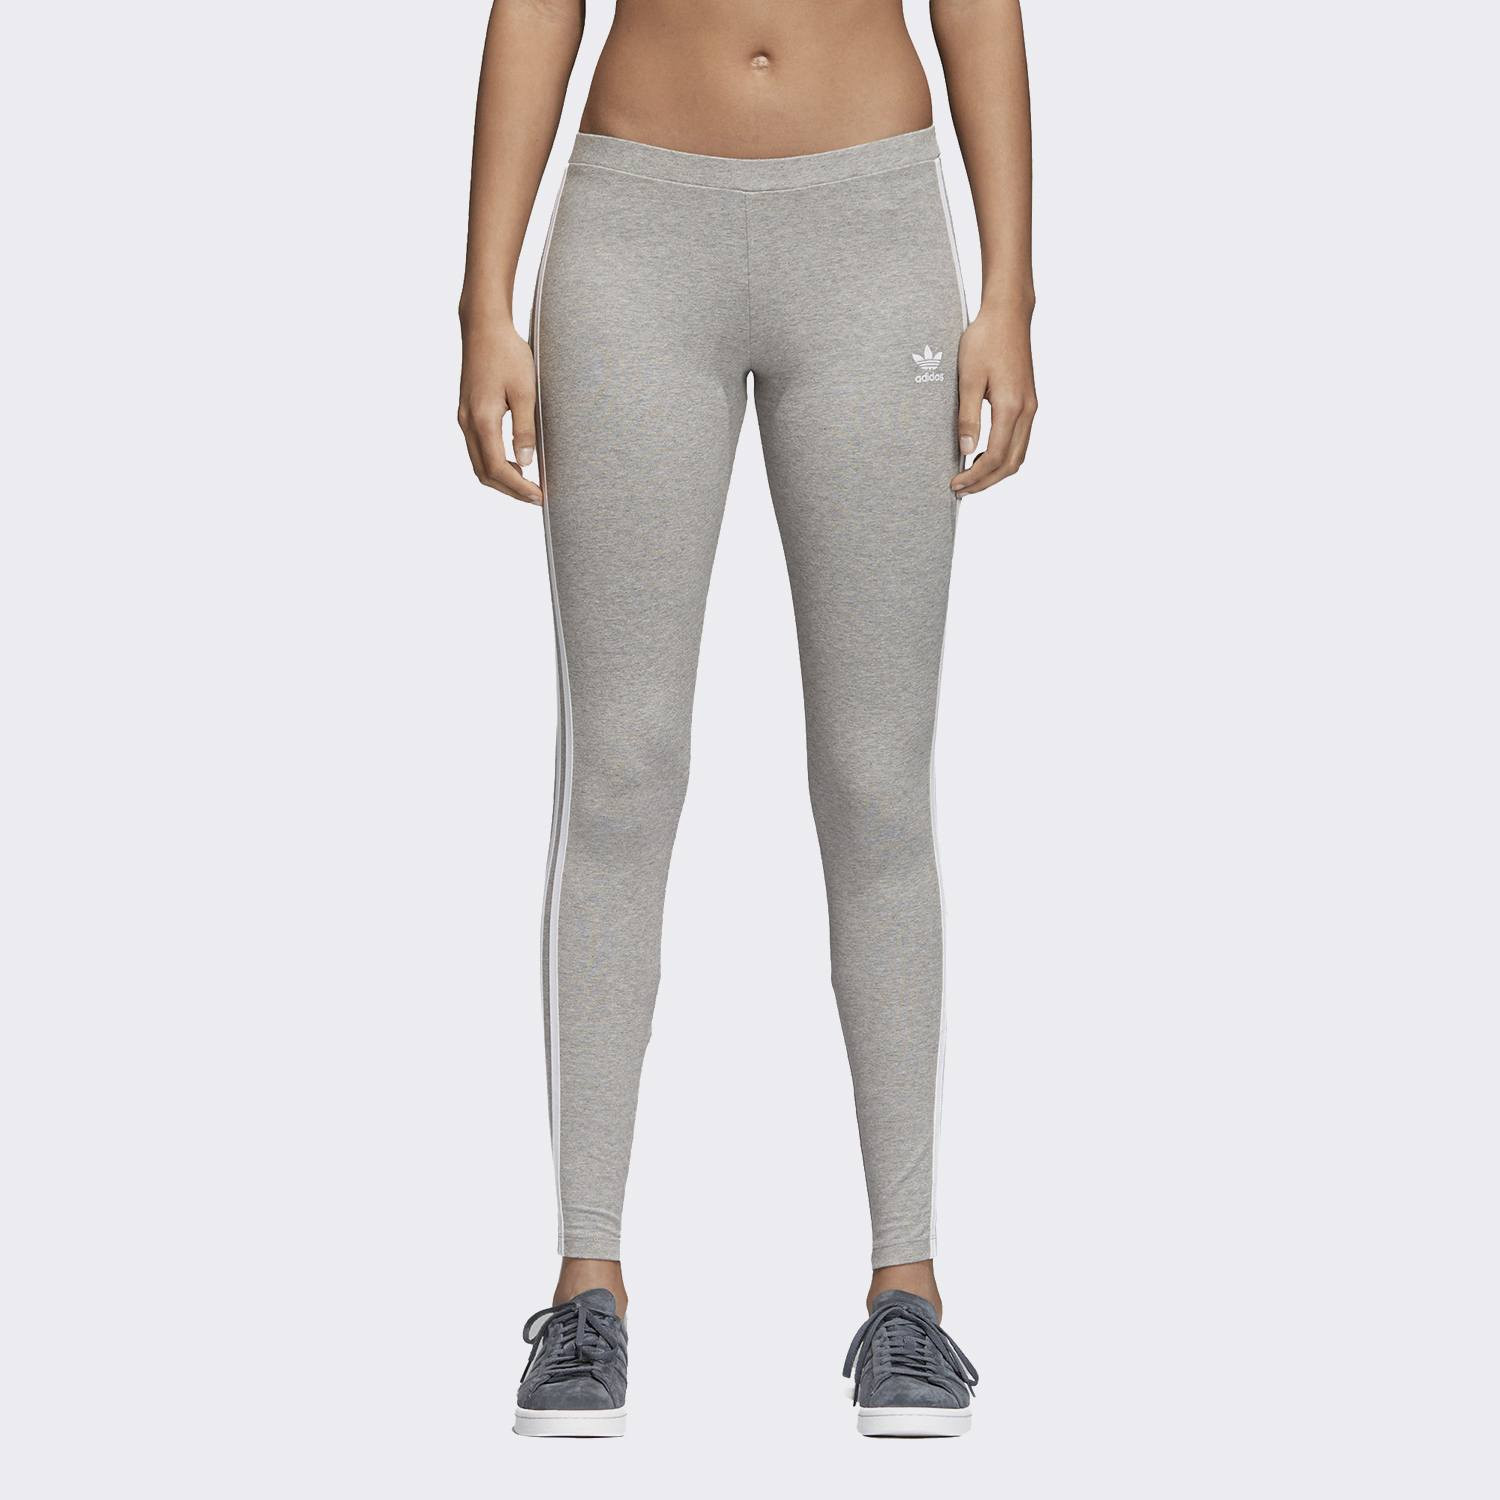 adidas Originals 3-Stripes Leggings - Γυναικείο Κολάν (9000001808_7747)